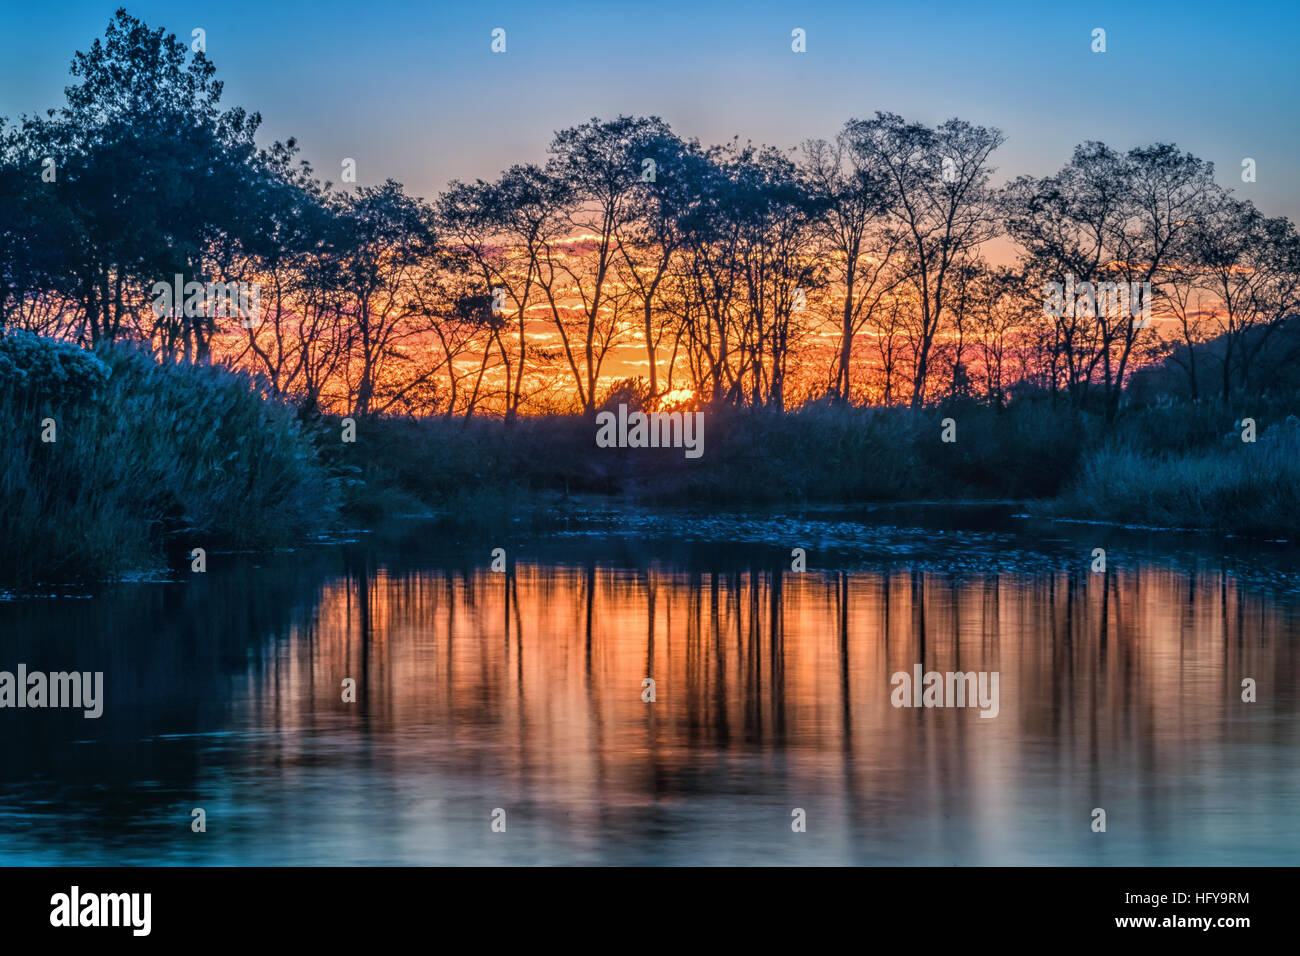 The sun was rising behind the trees and the grassy areas and the vibrant colors of the sky were reflected in the - Stock Image